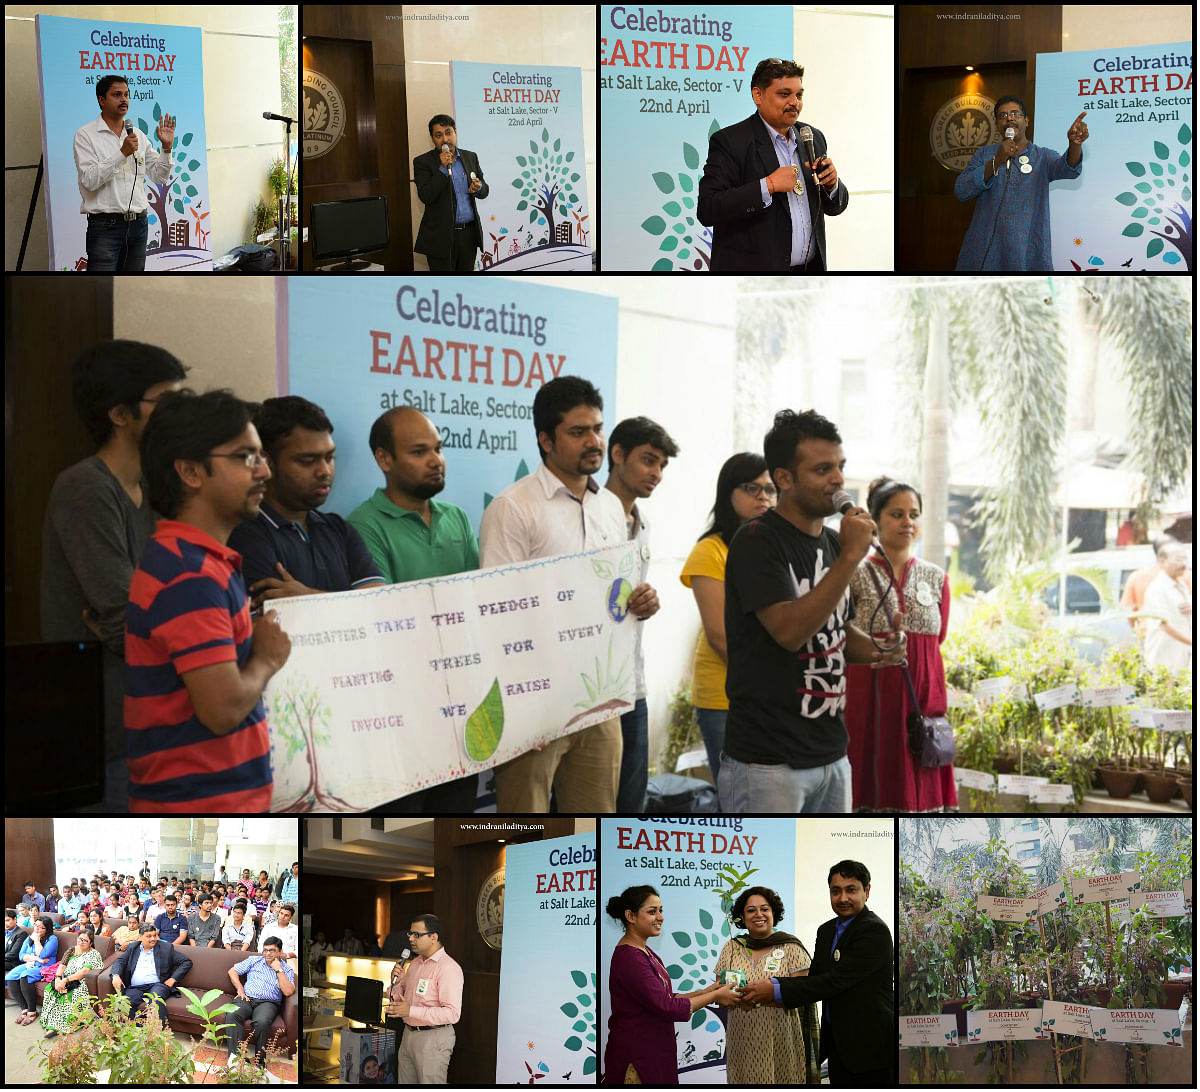 Innoraft taking the pledge to plant trees for every invoice they raise during the Earth Day Event